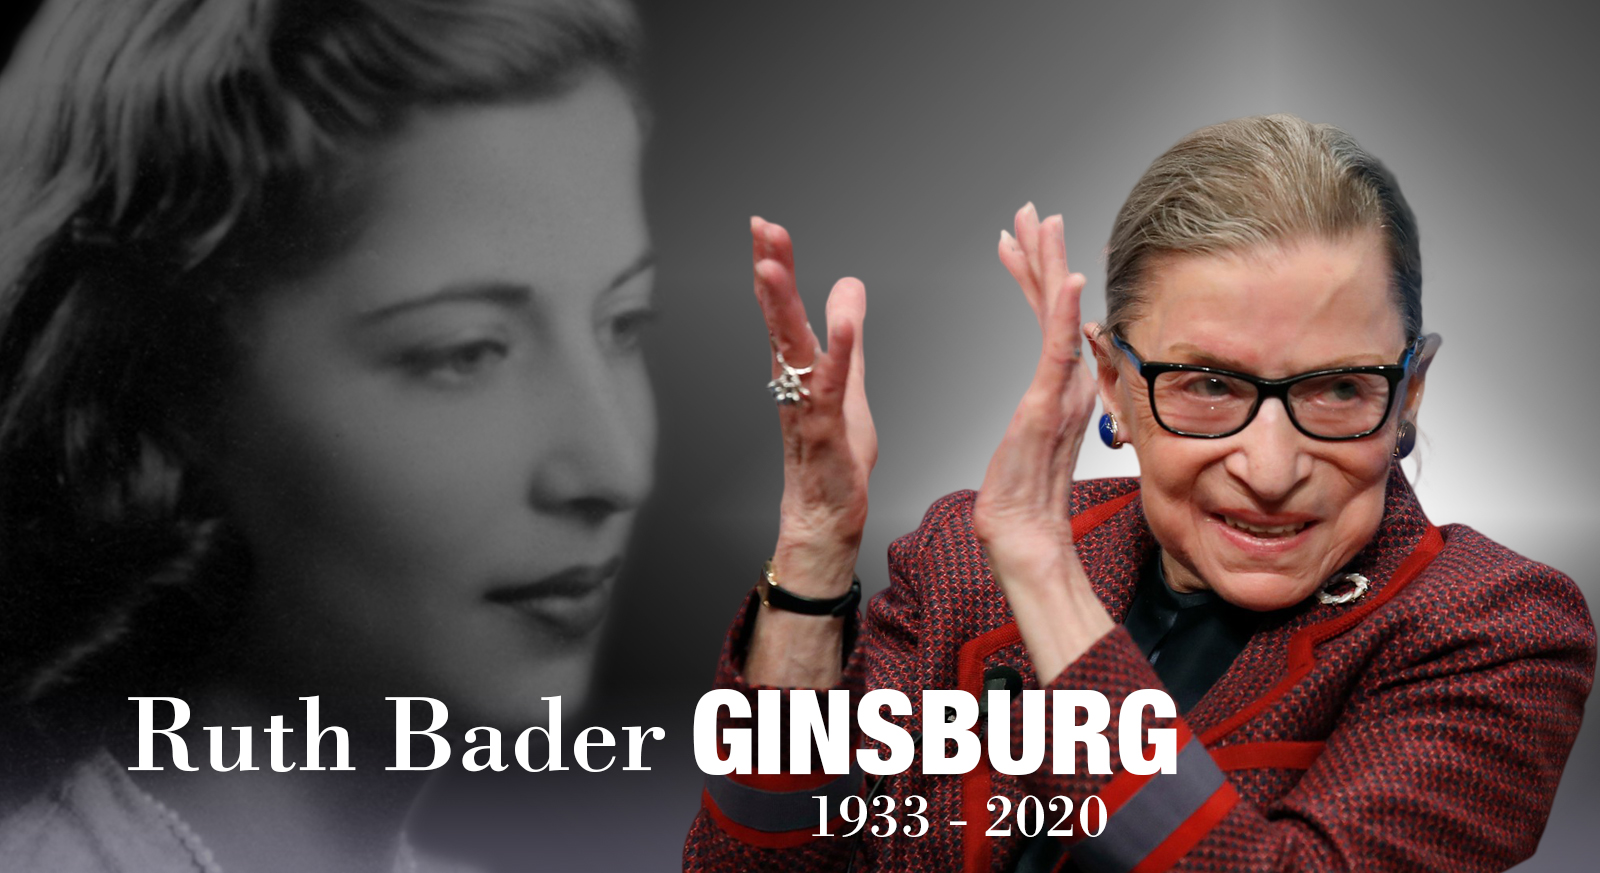 ruth bader ginsberg lawyer supreme court justice icon pioneer